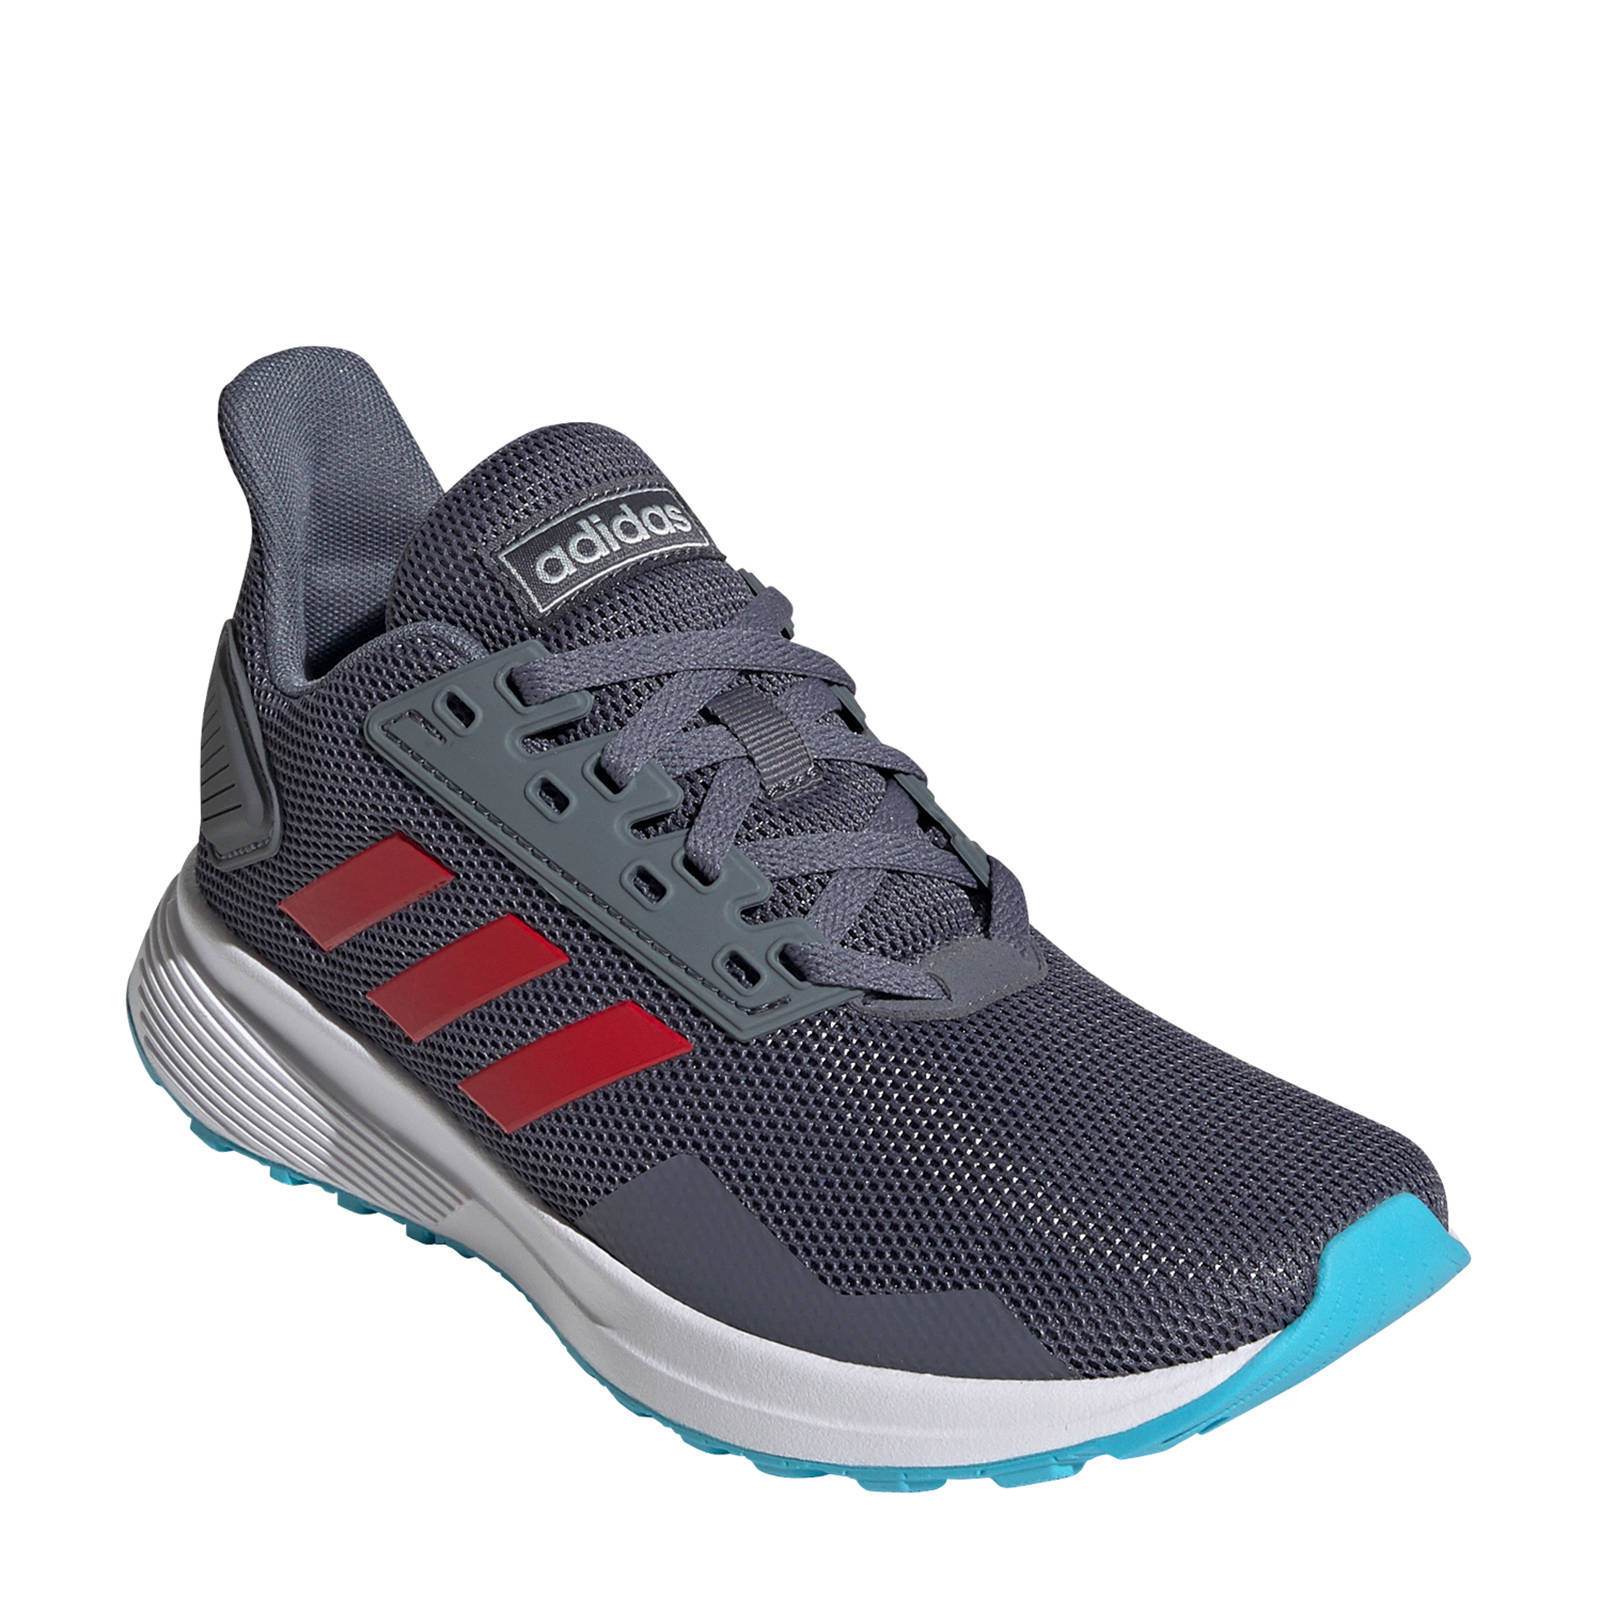 Unique Outlet Kids adidas Duramo 9 Running Shoes [Grey